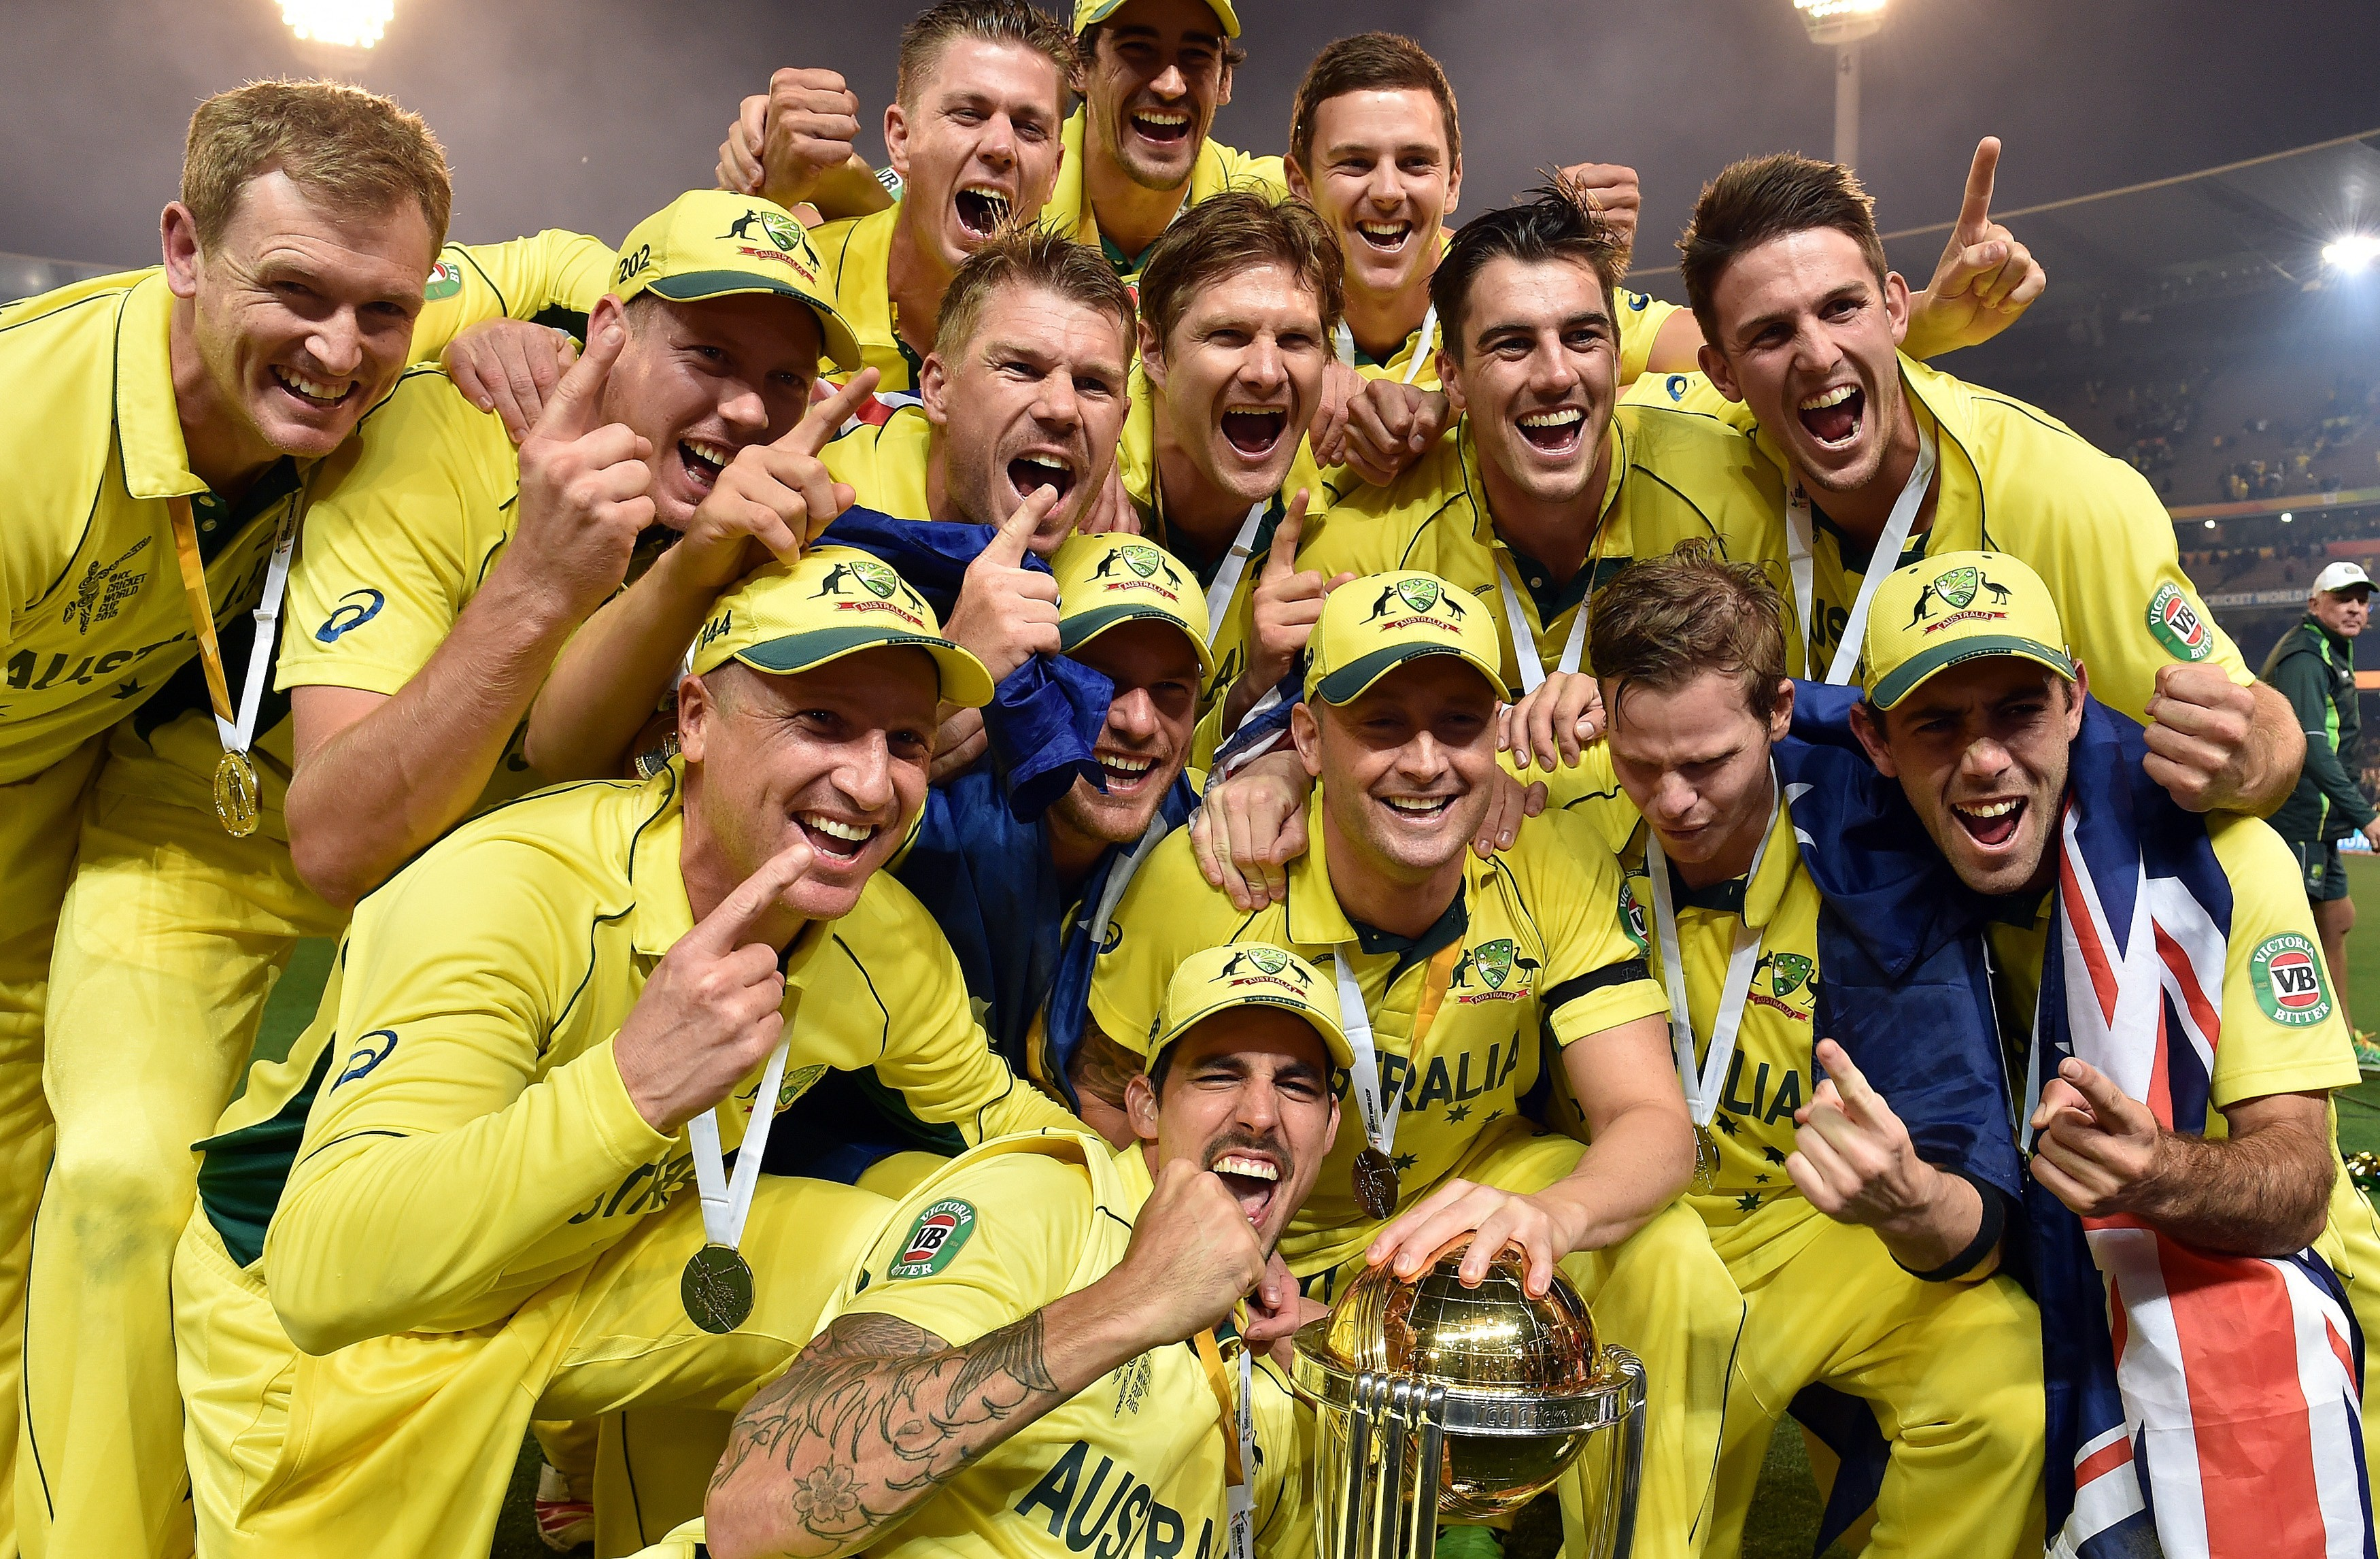 Australian cricketers celebrate with the trophy after the winning the 2015 Cricket World Cup final between Australia and New Zealand in Melbourne on March 29, 2015. AFP PHOTO / SAEED KHAN --IMAGE RESTRICTED TO EDITORIAL USE - STRICTLY NO COMMERCIAL USE--        (Photo credit should read SAEED KHAN/AFP/Getty Images)